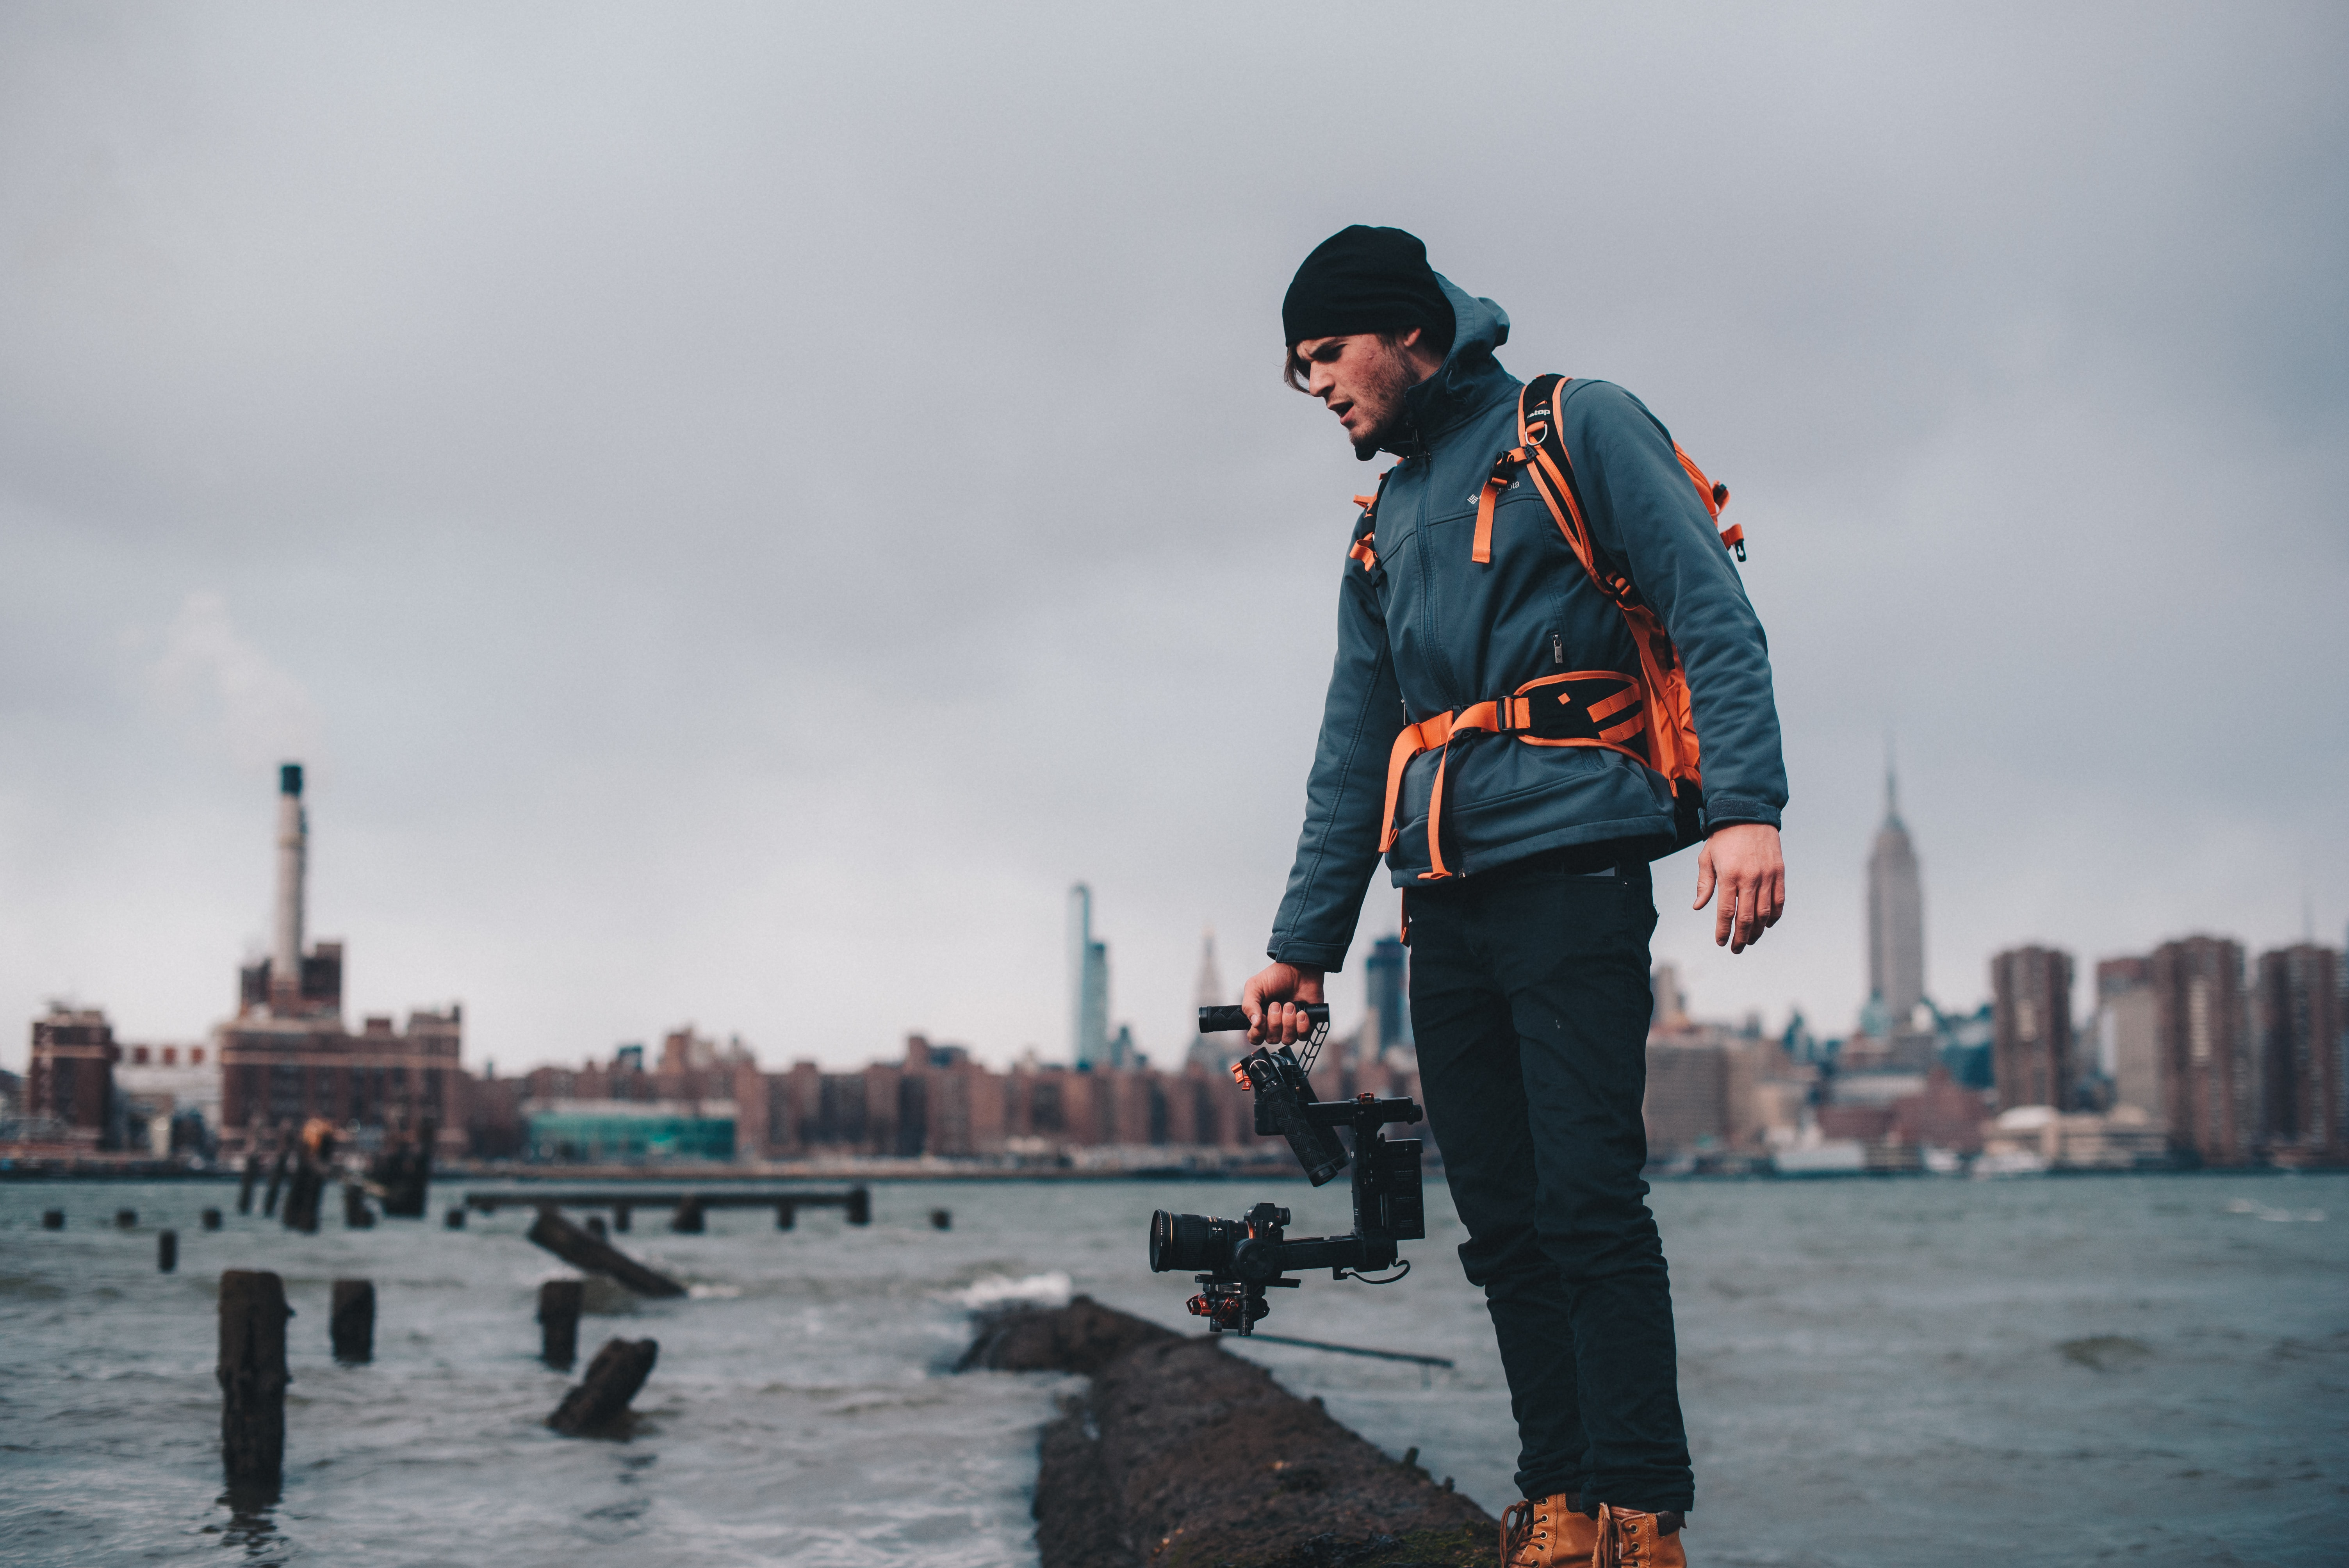 man wearing teal zip-up bubble jacket taking photo of body of water with camera with stabilizer